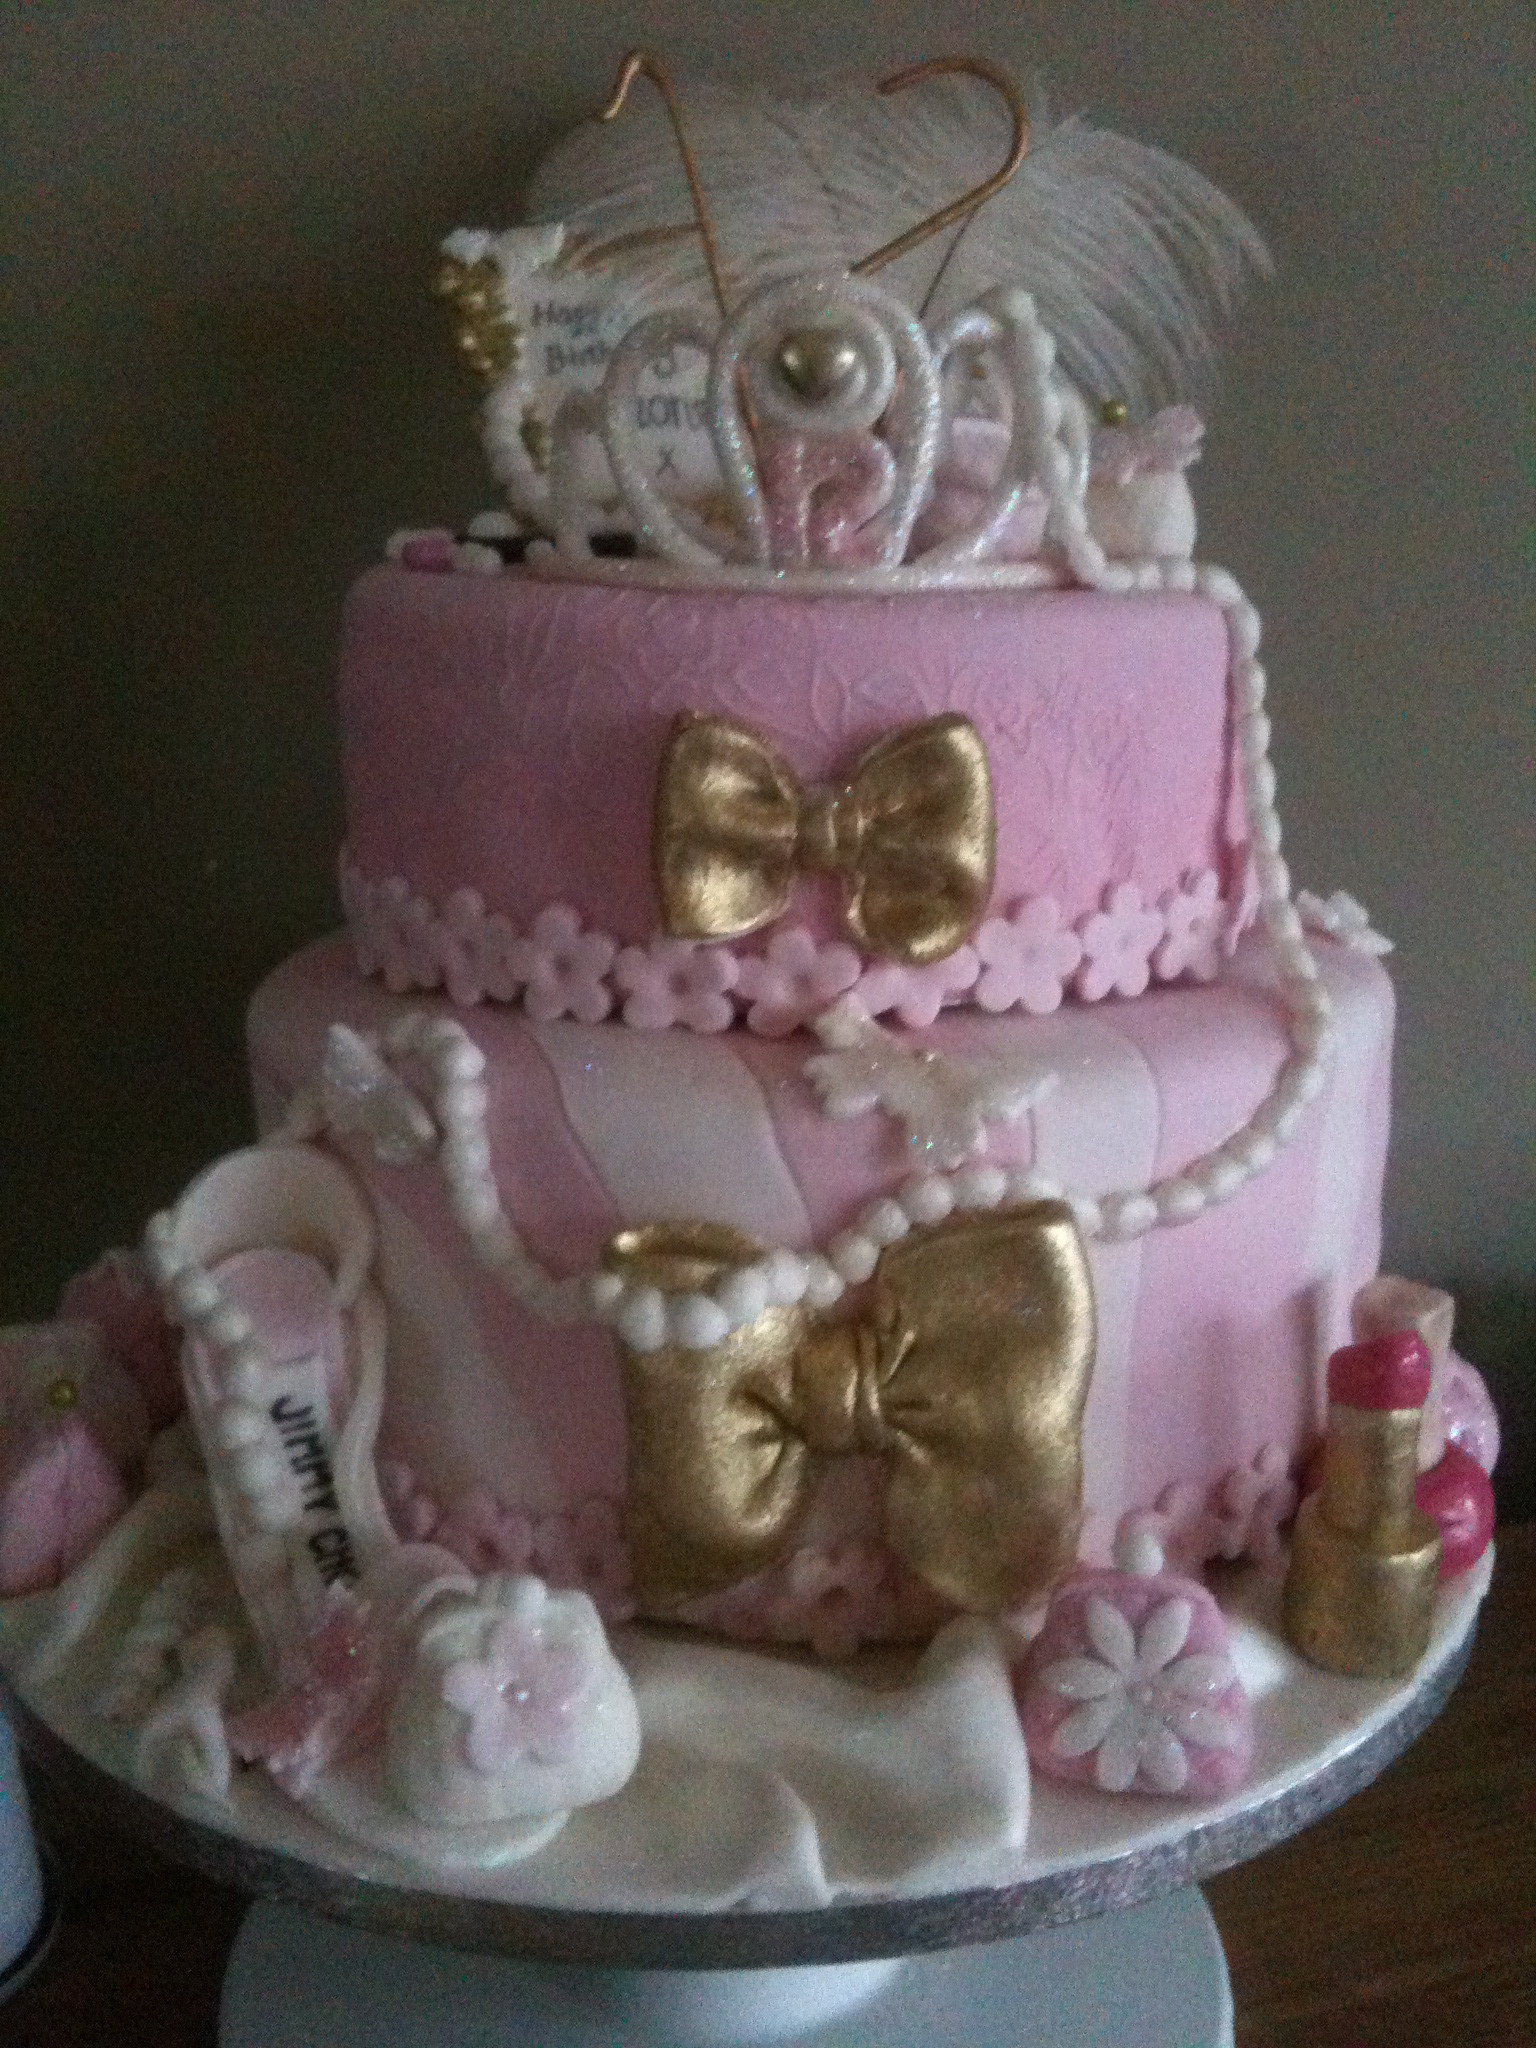 Best ideas about Birthday Cake For 12 Years Old Girl . Save or Pin Girly pink theatrical cake for a 12 year old Now.